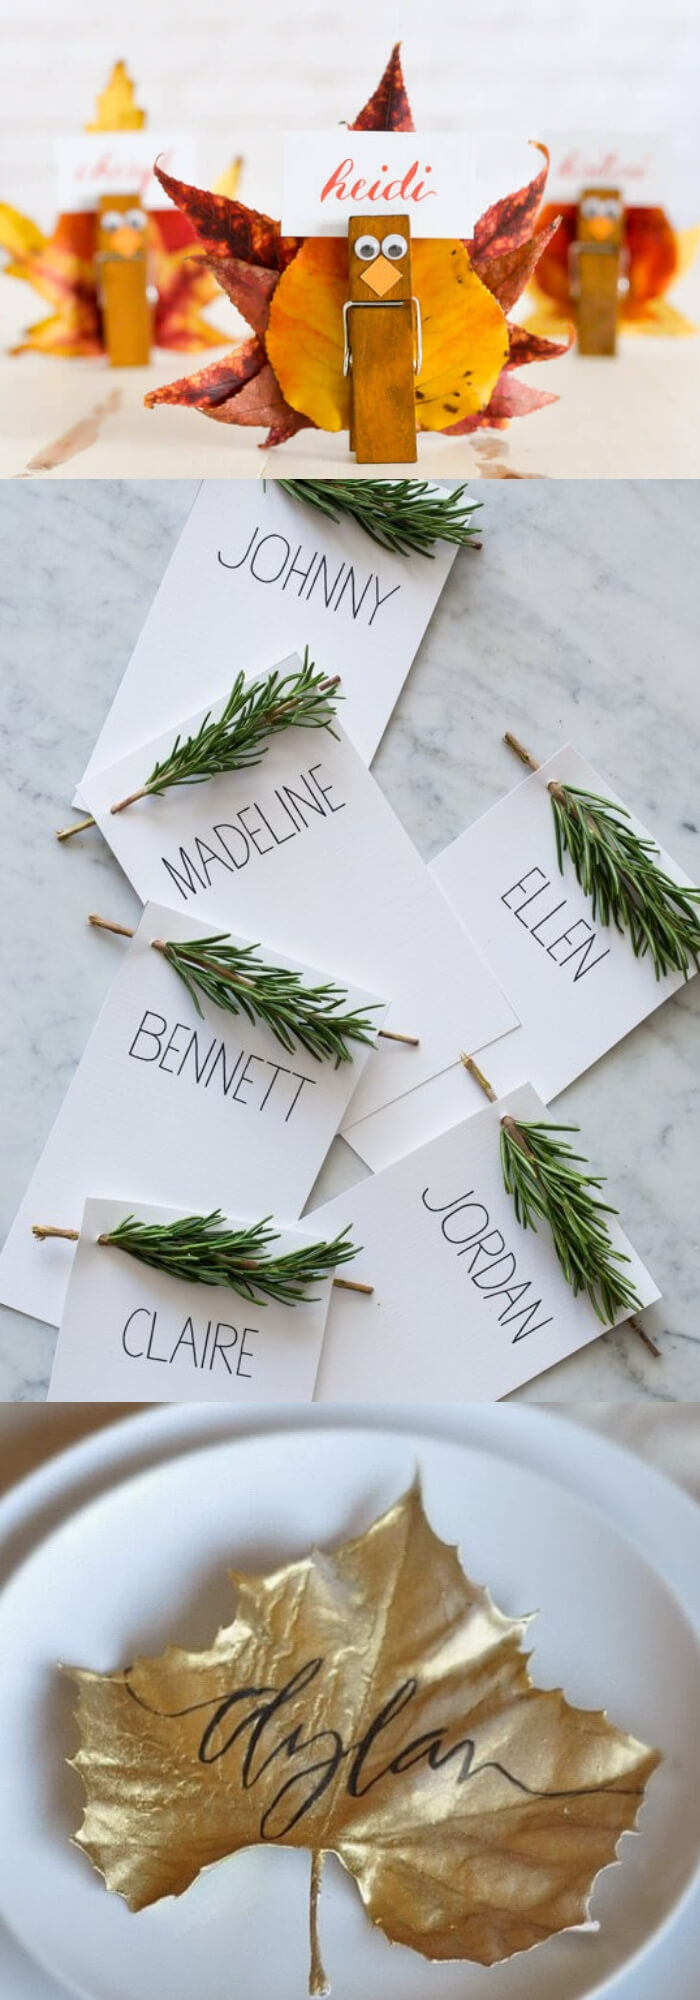 Place card for thanksgiving | Thanksgiving Gifts Kids Can Make - FarmFoodFamily.com